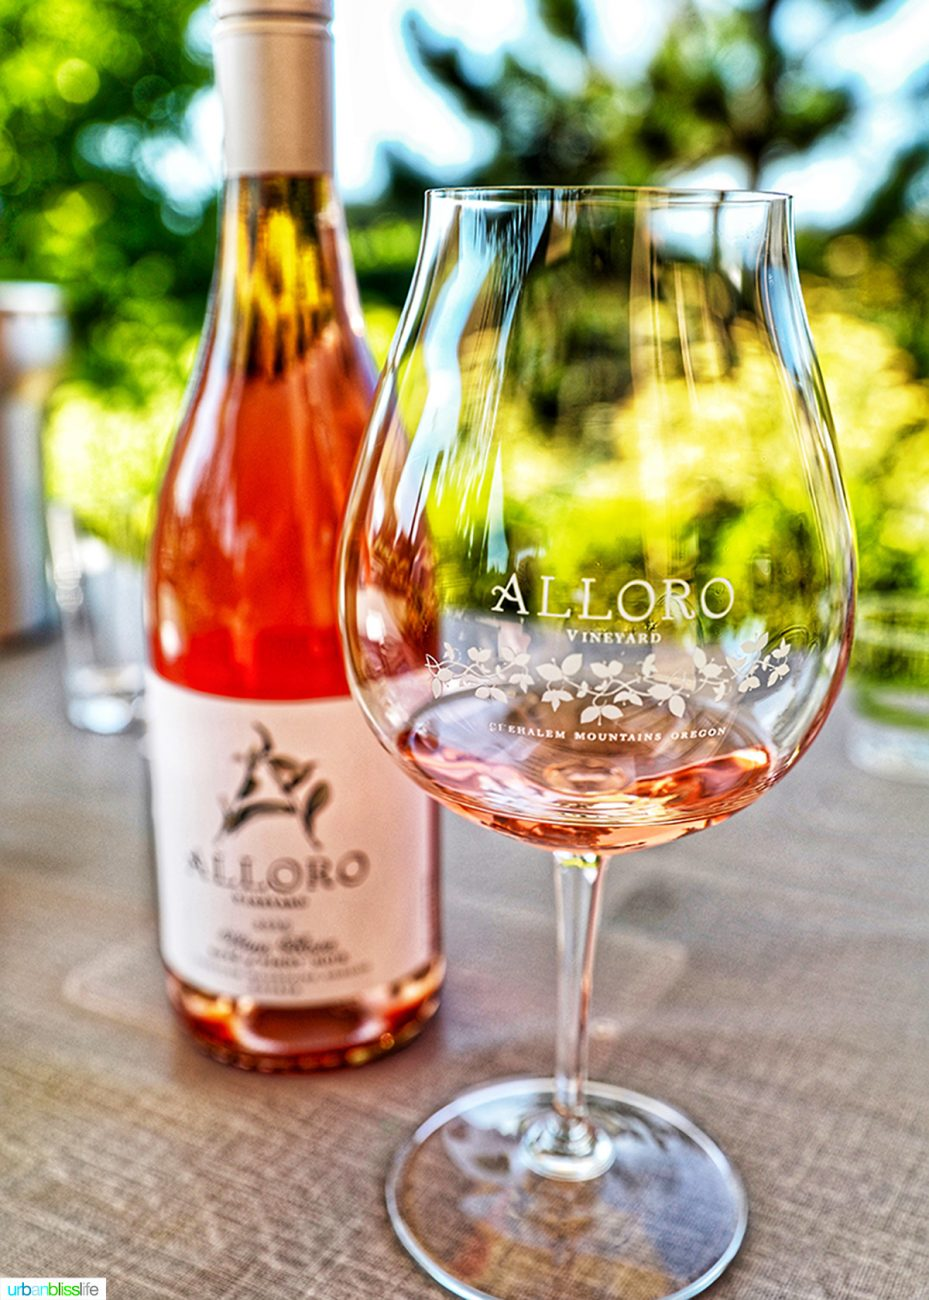 Glass and bottle of Alloro Vineyards rose